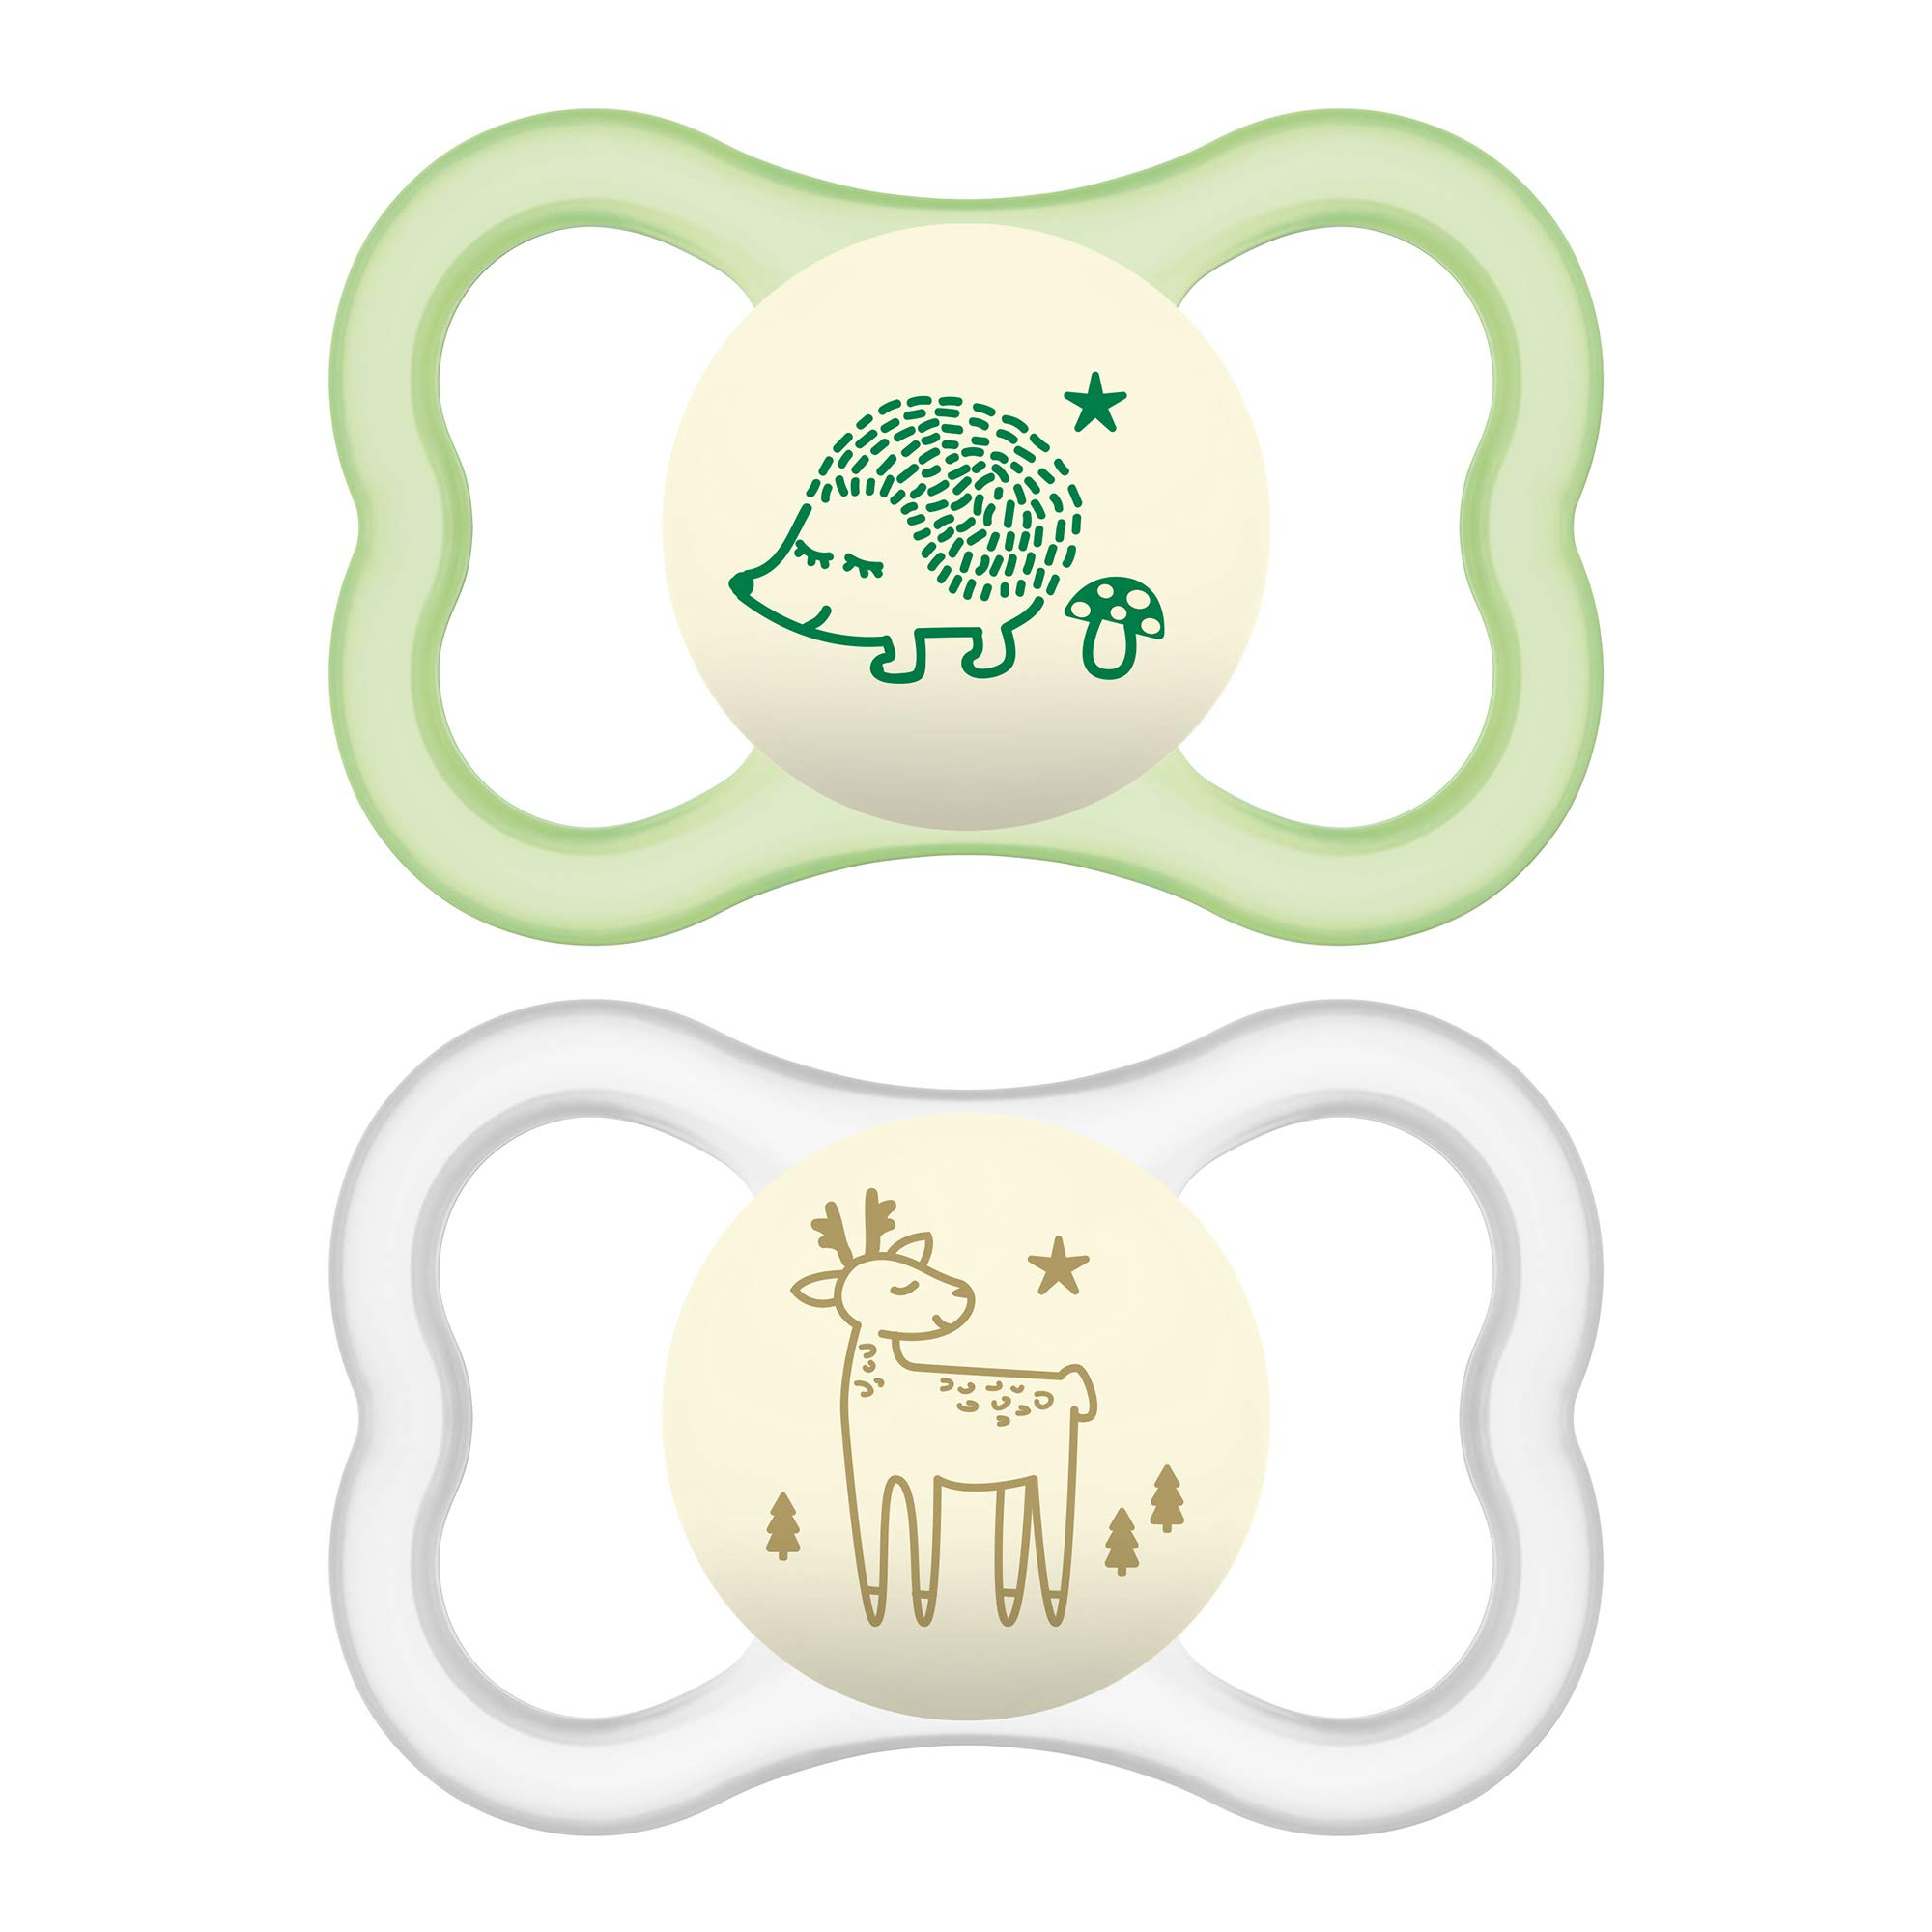 MAM Air Night Pacifiers (2 pack), MAM Sensitive Skin Pacifier 6+ Months, Glow in the Dark Pacifier, Best Pacifier for…